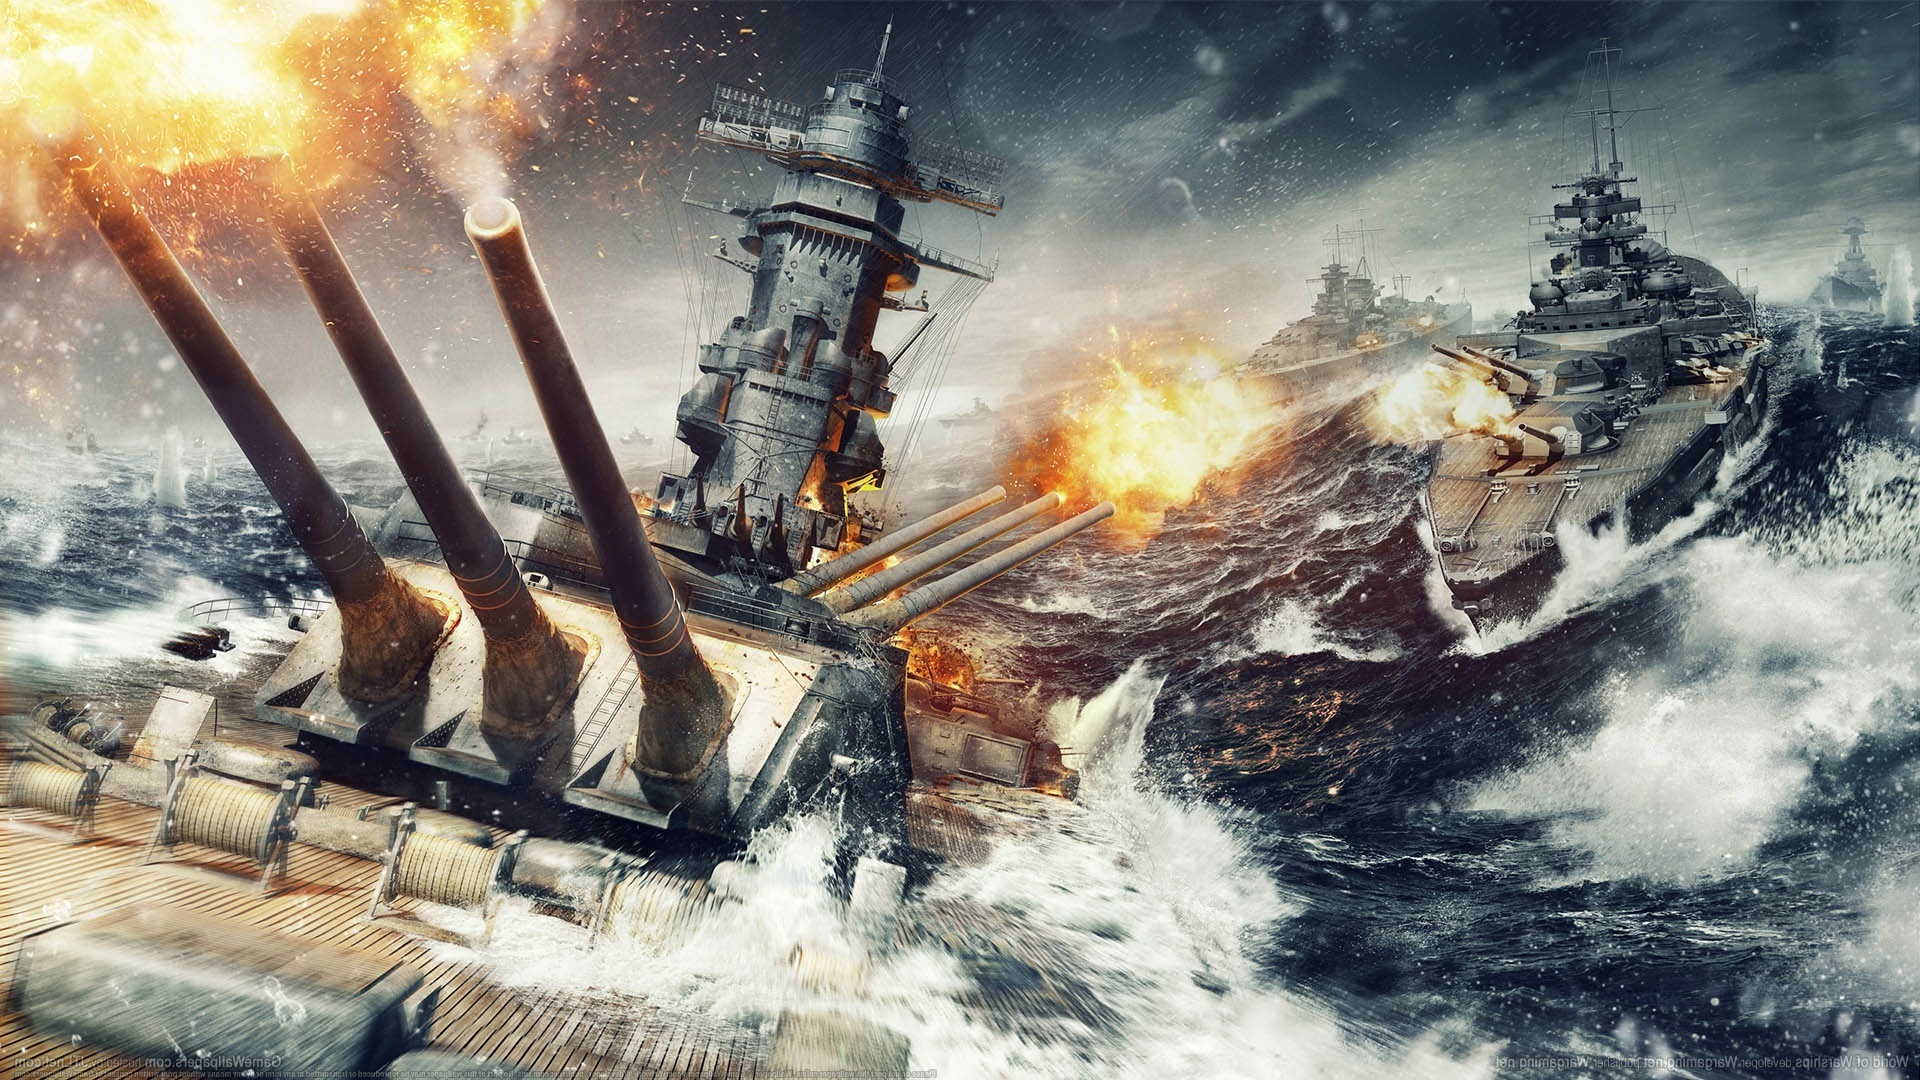 Free Download World Of Warships Wallpaper Latest Pictures 2k2w68s2